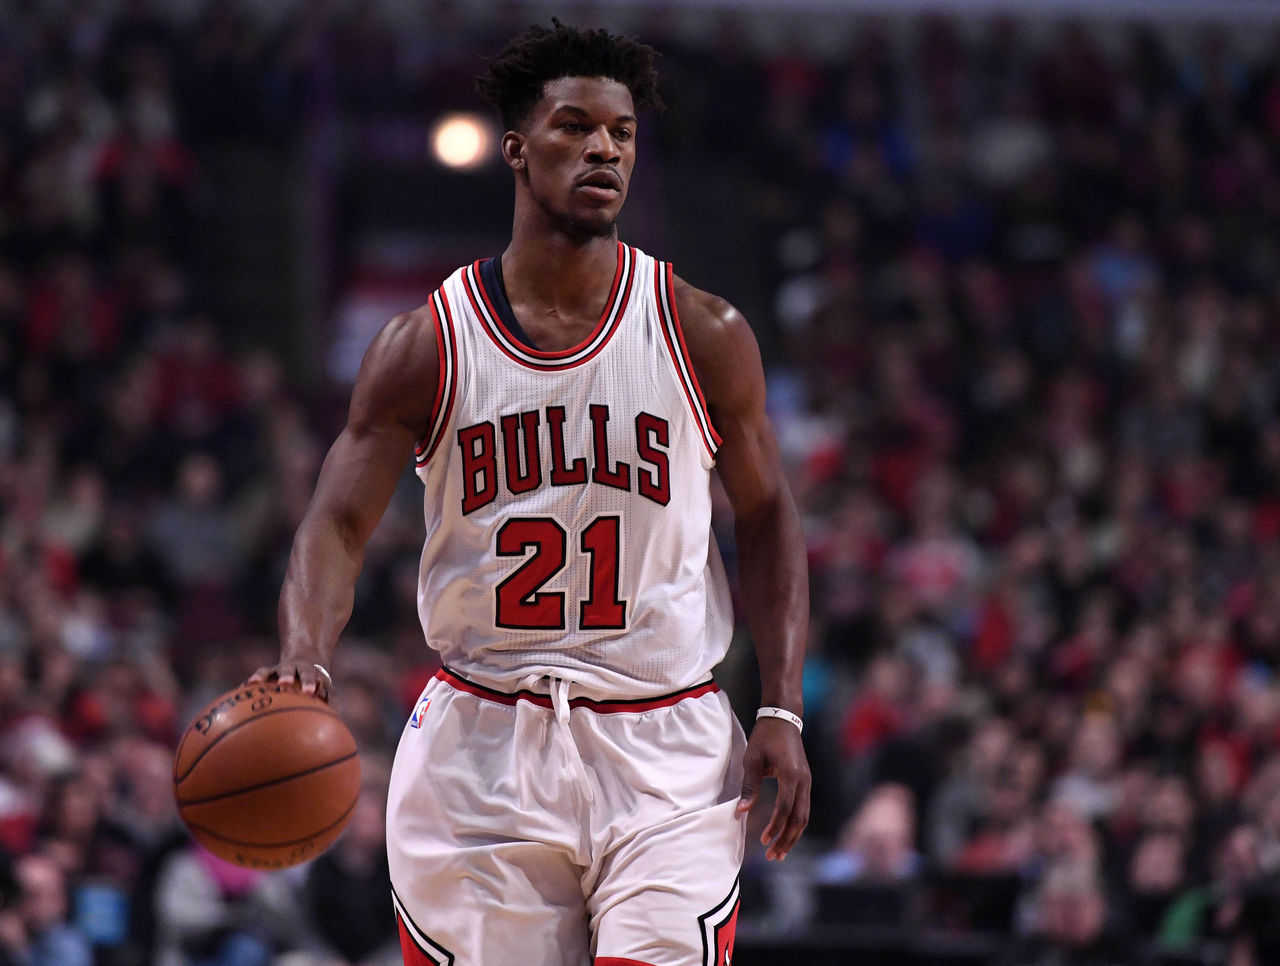 Cropped 2017 01 14t225921z 813301320 nocid rtrmadp 3 nba new orleans pelicans at chicago bulls